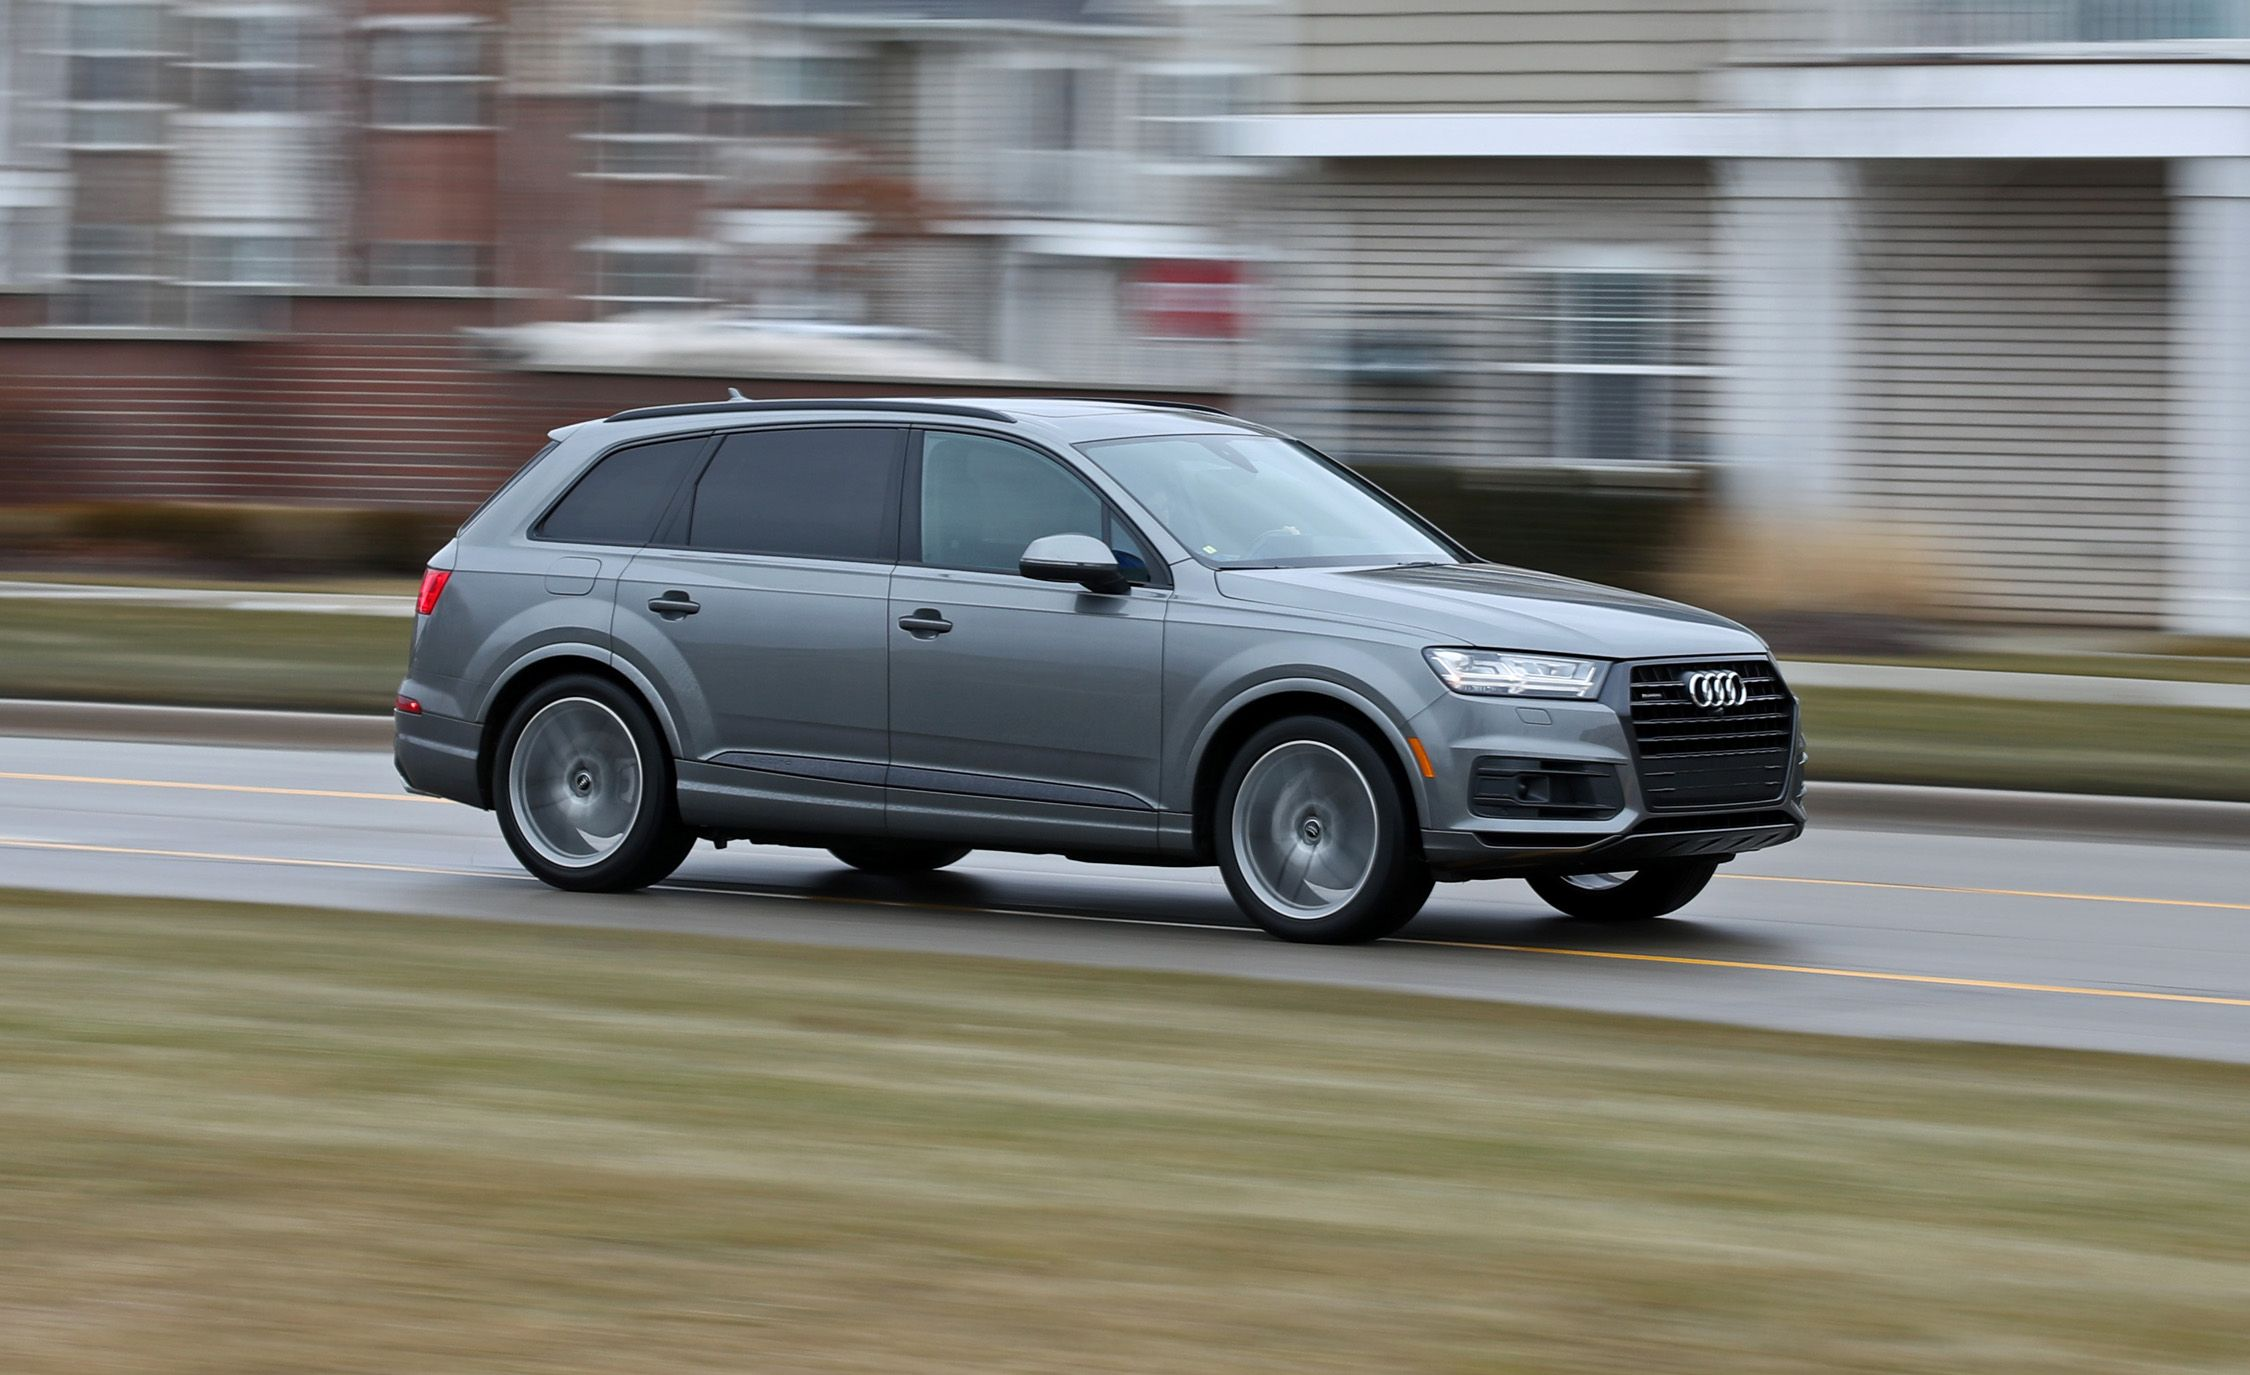 2017 audi q7 3 0t quattro long term test review car and driver rh caranddriver com Audi RS3 Chassis Audi RS3 Chassis